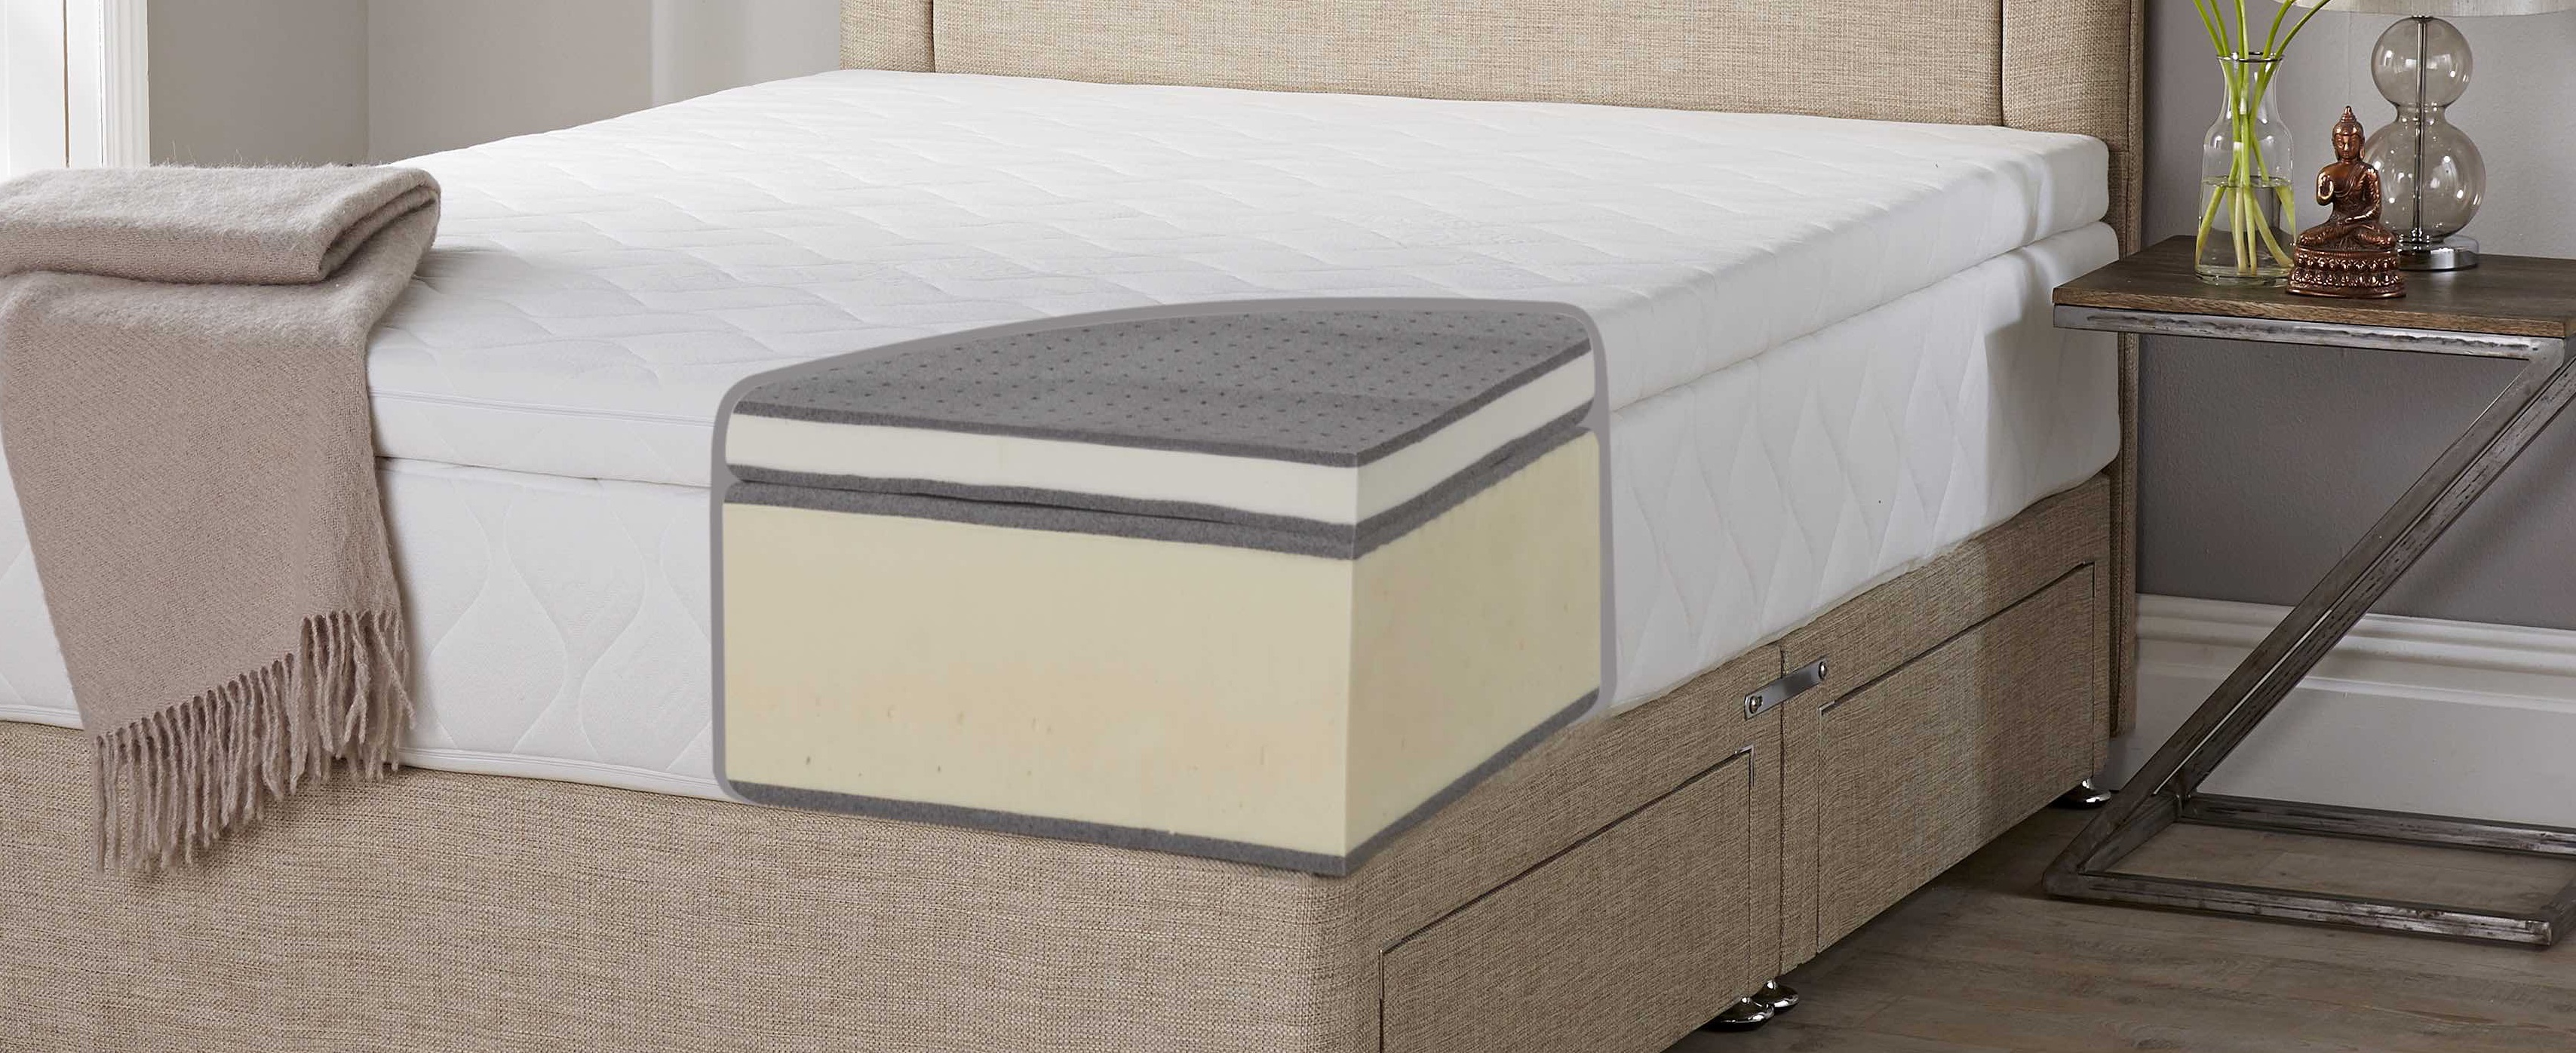 What Is In A Latex Mattress John Ryan By Design